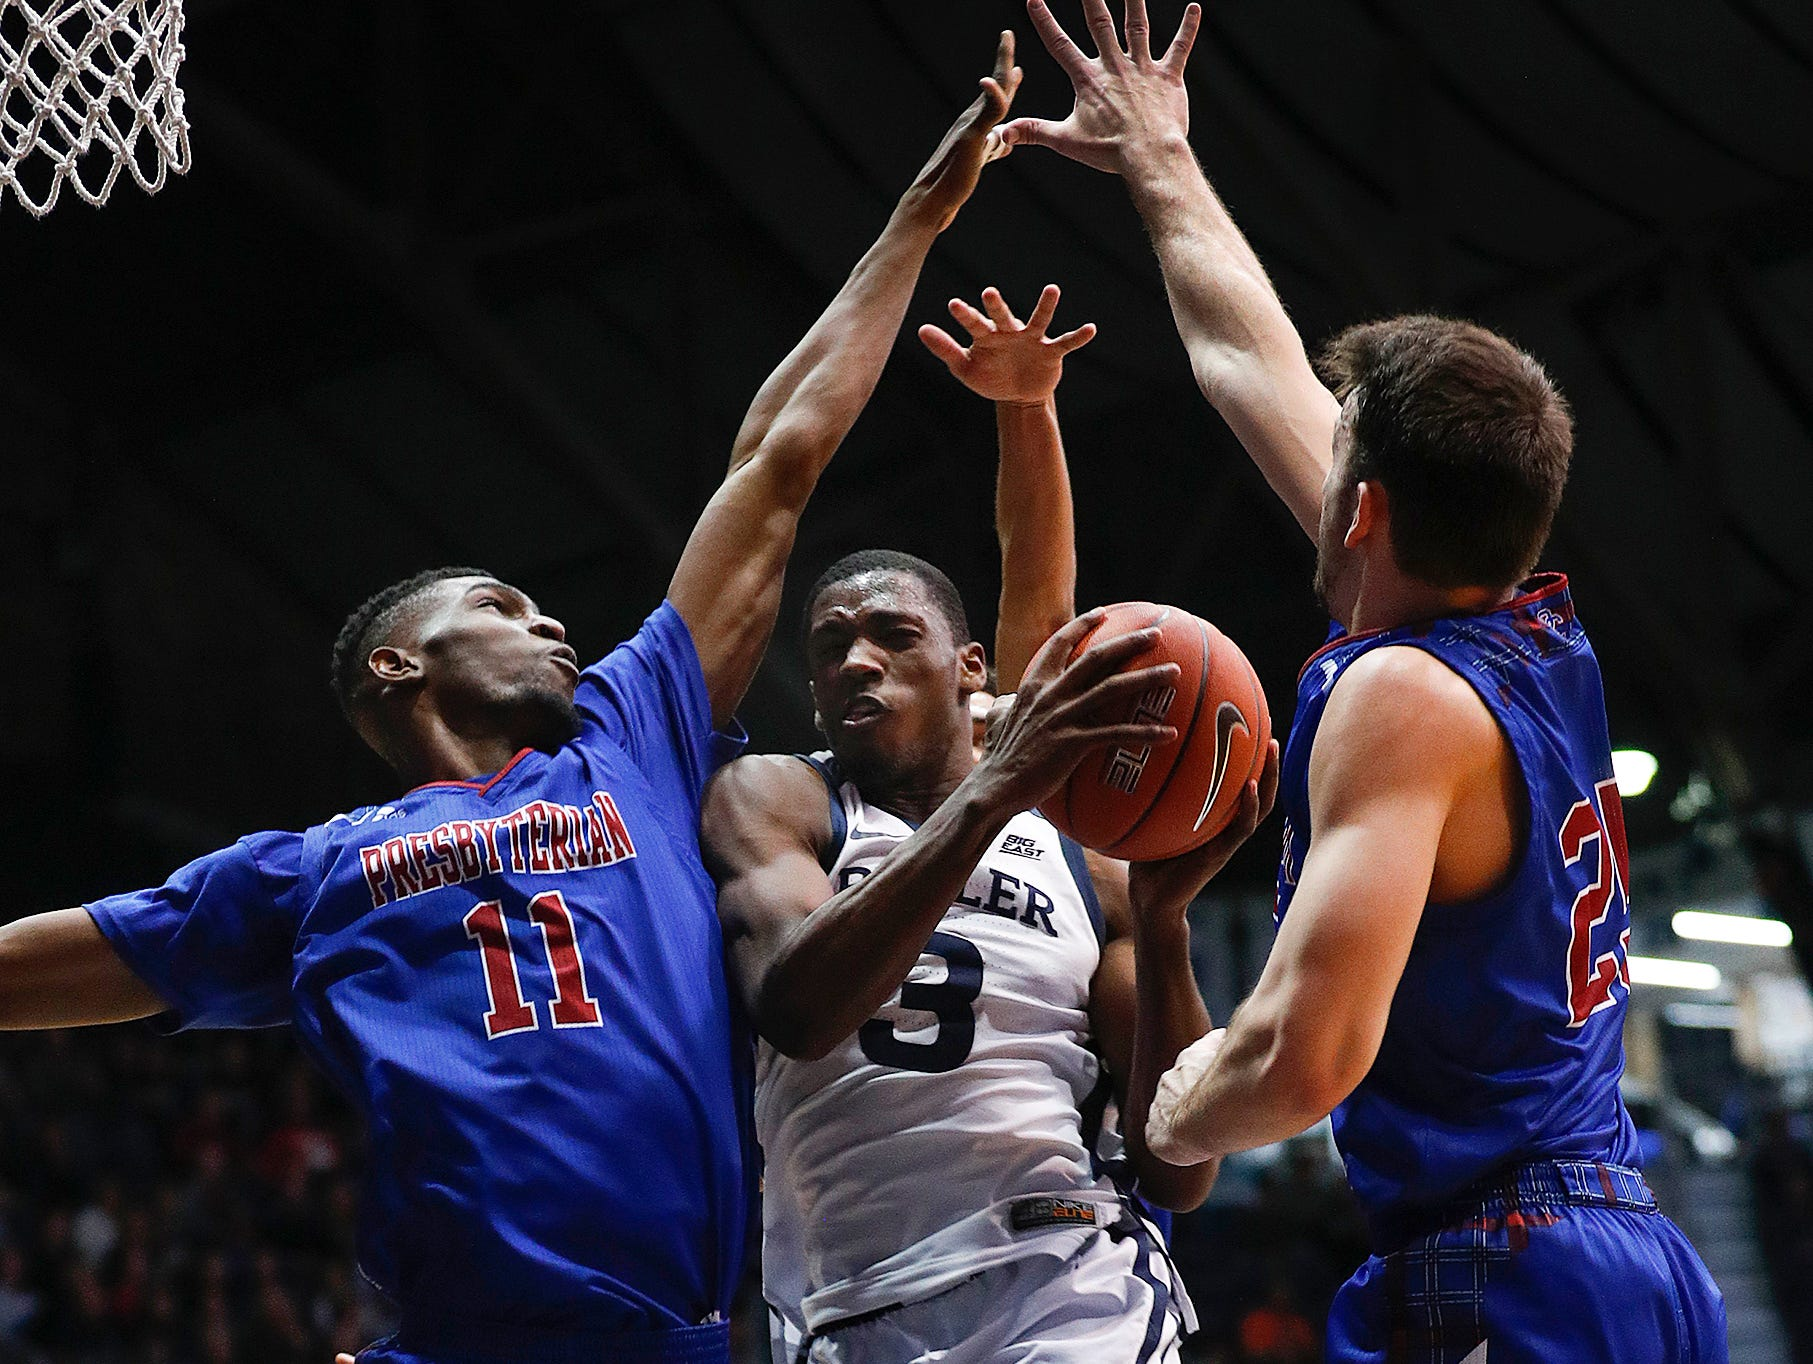 Butler Bulldogs guard Kamar Baldwin (3) is fouled by Presbyterian Blue Hose center Armel TeTe (11) in the second half of their game at Hinkle Fieldhouse on Monday, Dec. 18, 2018.